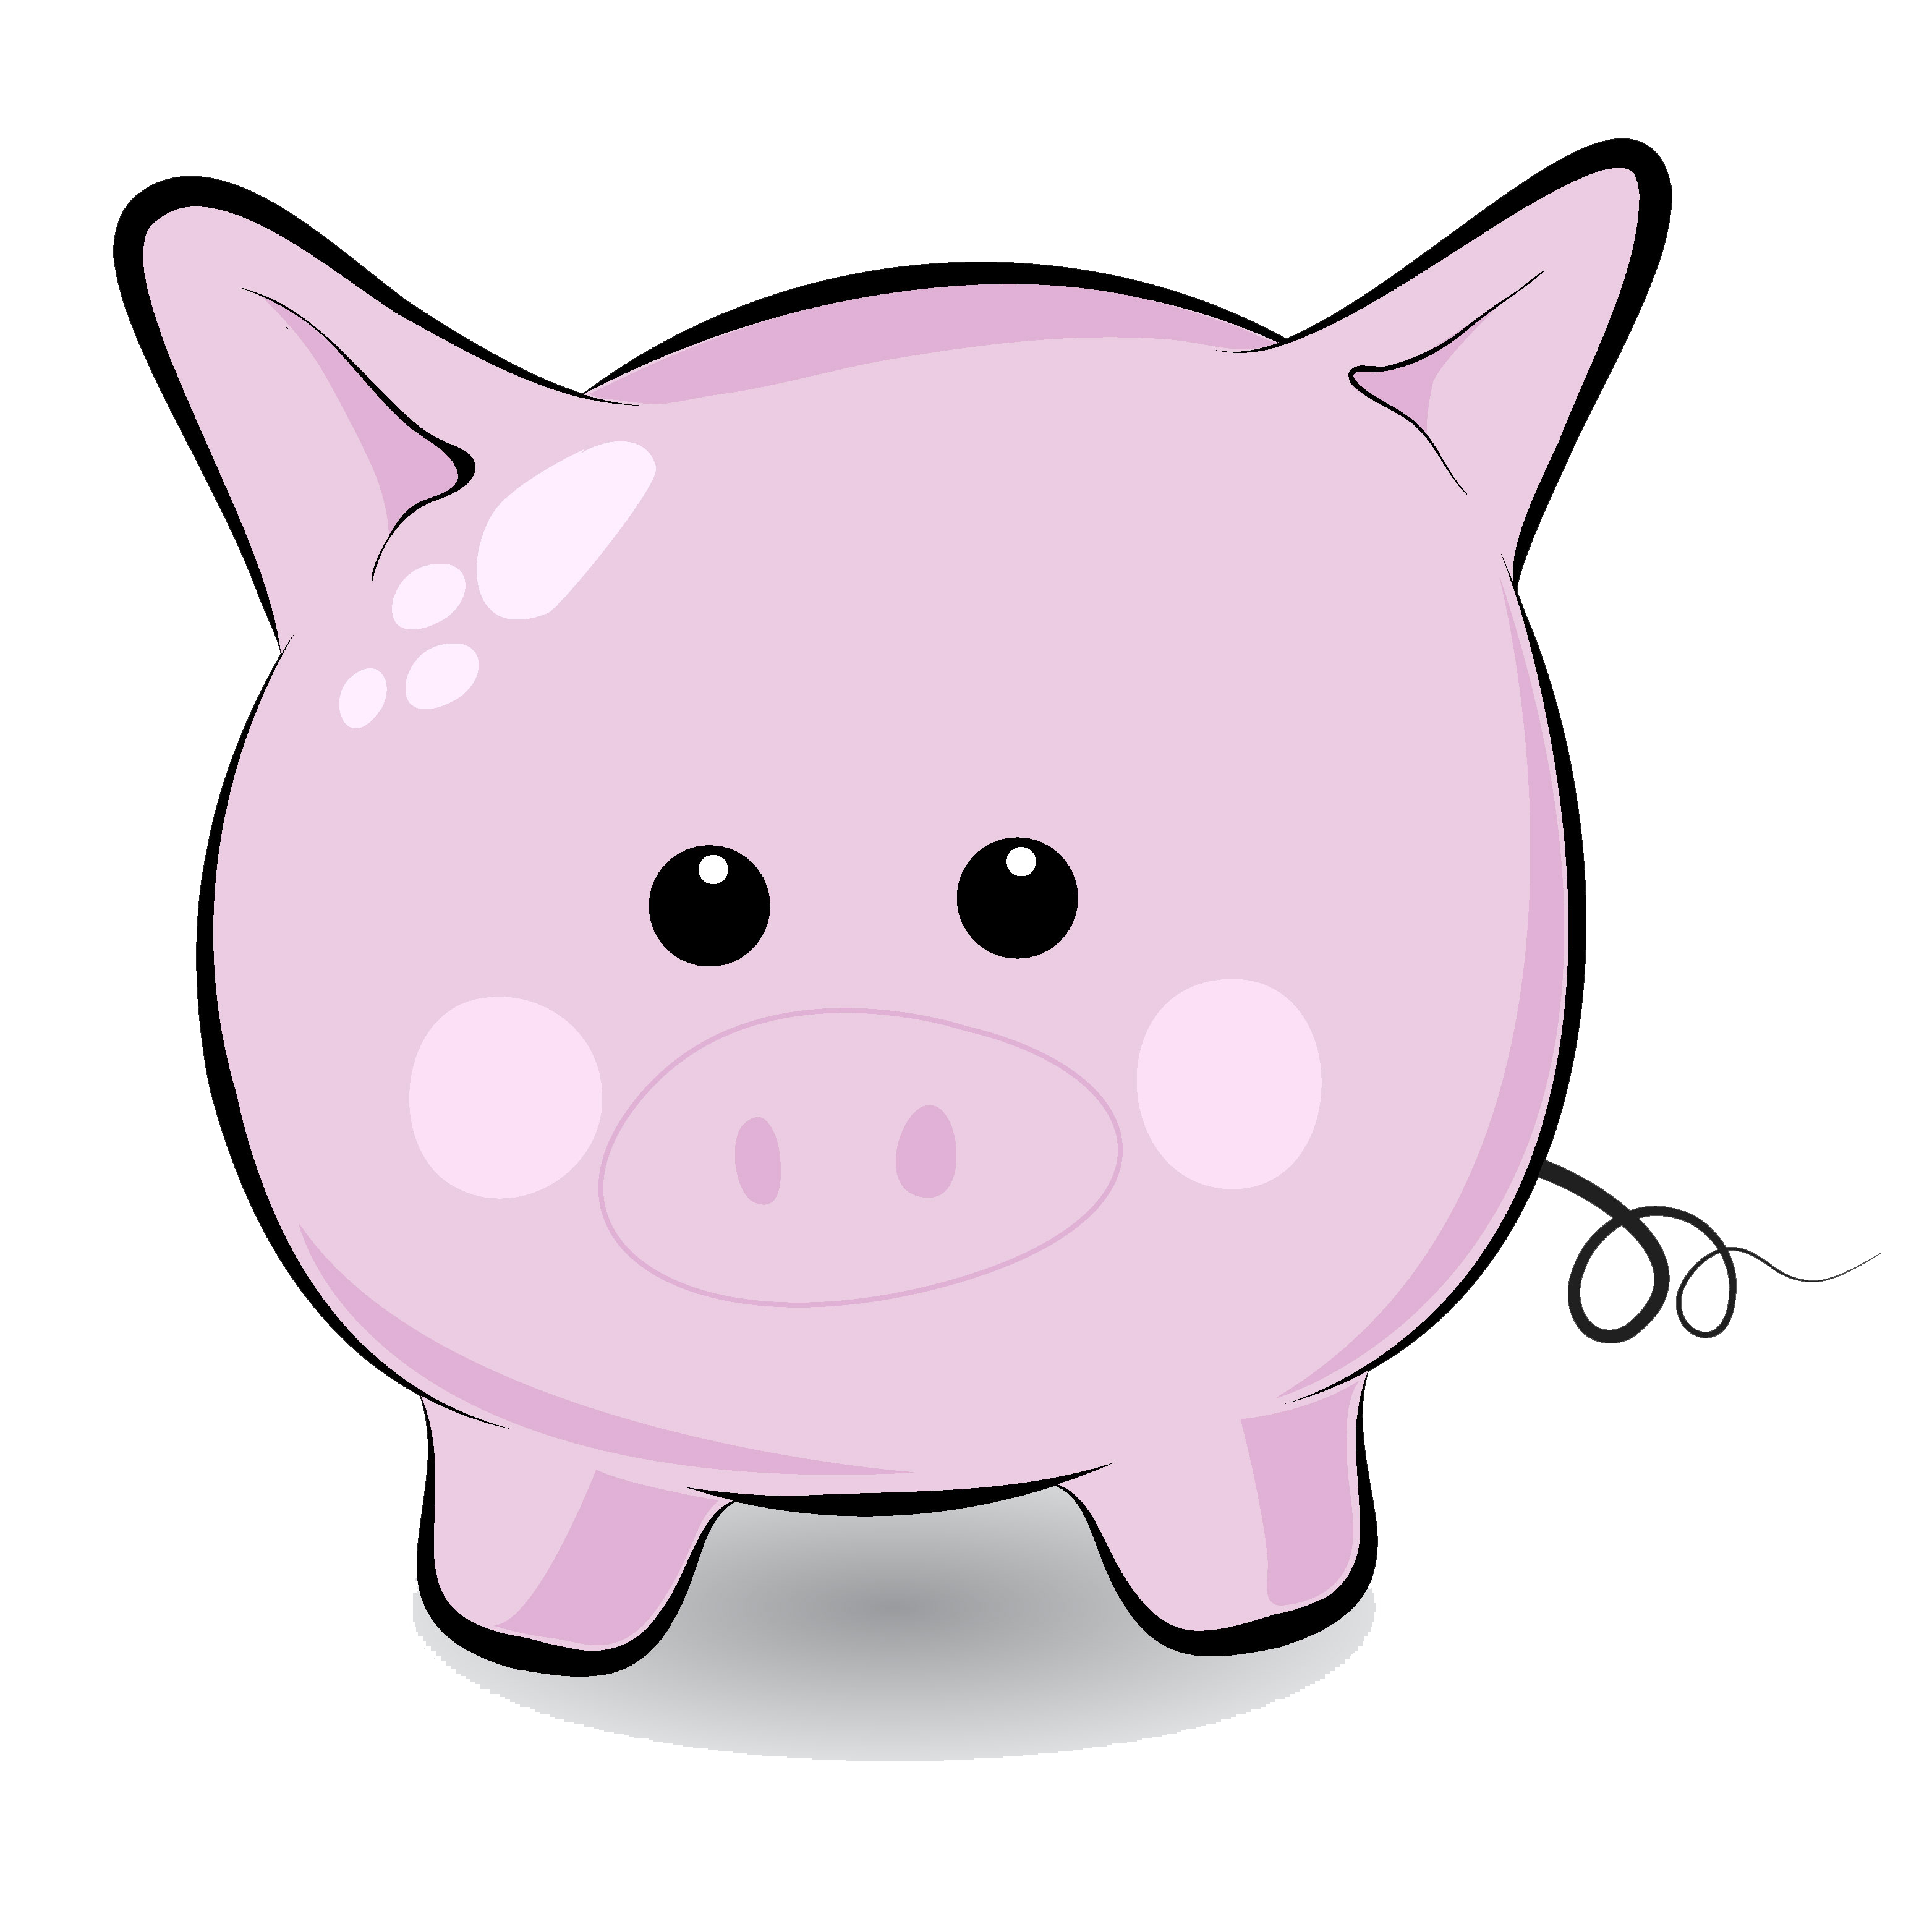 Cute pig face clip art free clipart images 4 - Pig Face PNG HD